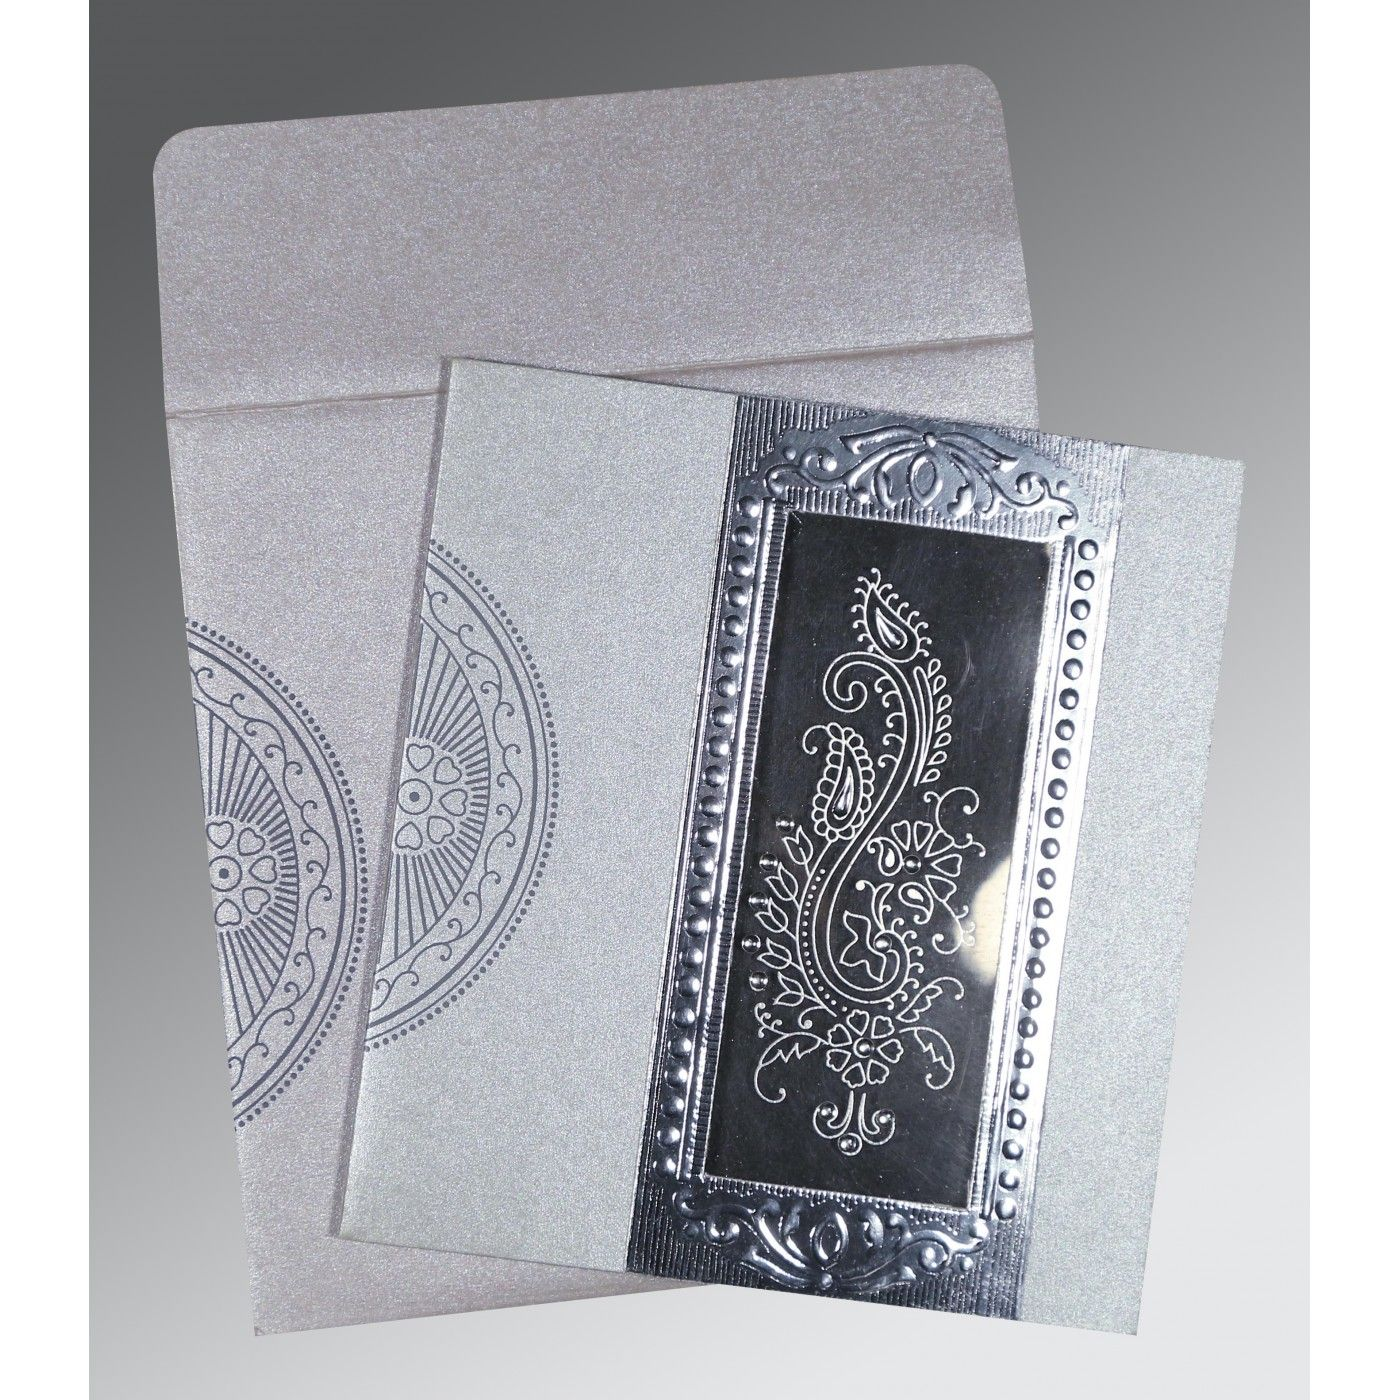 SILVER SHIMMERY PAISLEY THEMED - FOIL STAMPED WEDDING INVITATION : CIN-8230F - IndianWeddingCards